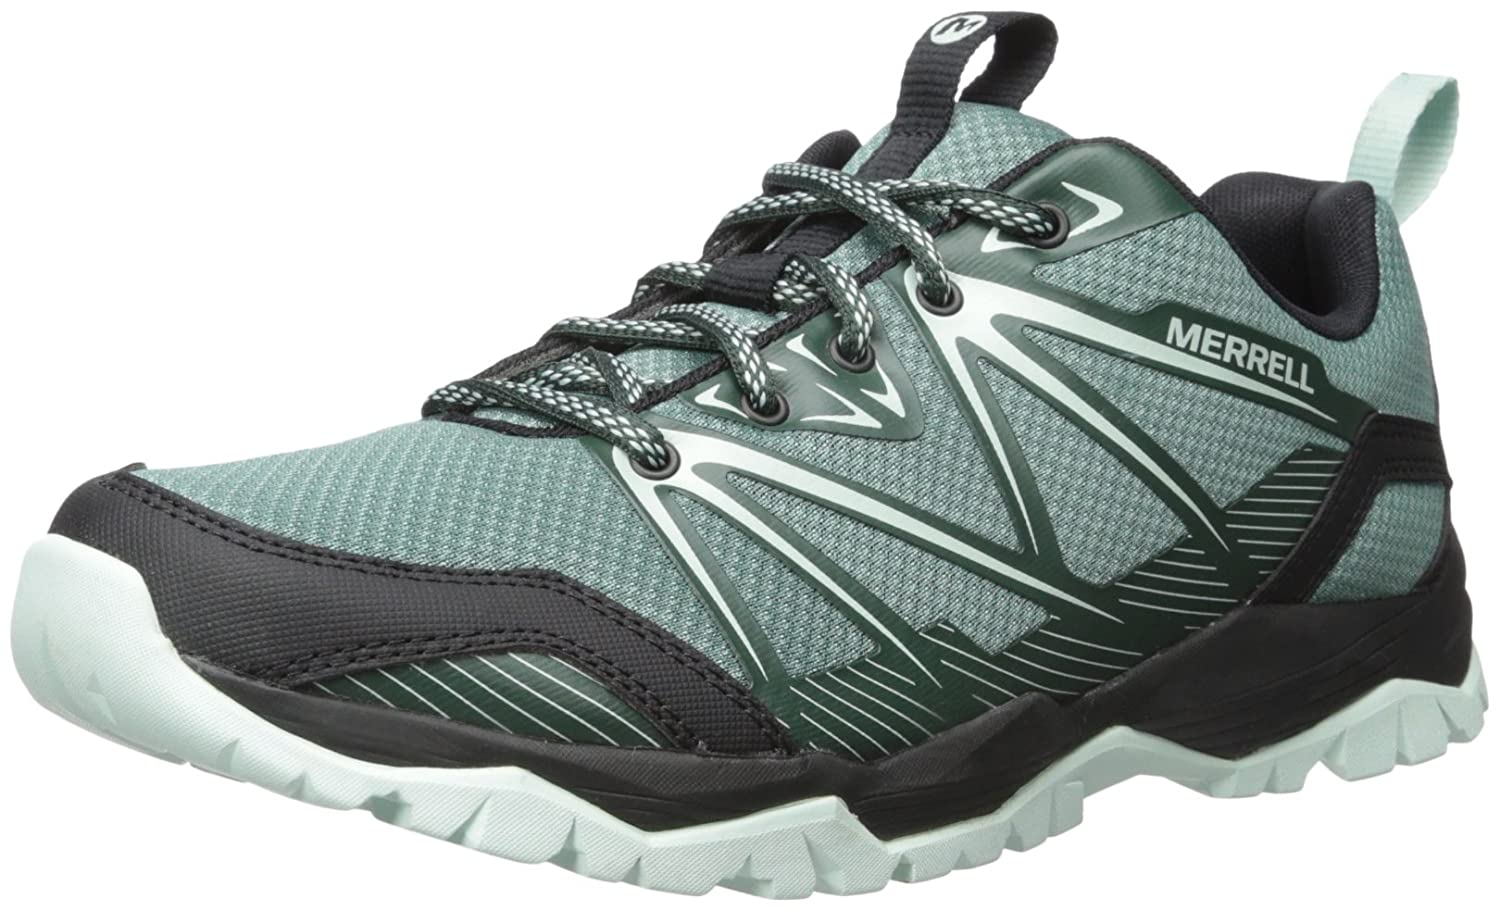 Merrell Women's Capra Rise-W Hiking Shoe B018WDT4T4 6 B(M) US|Sagebrush Green